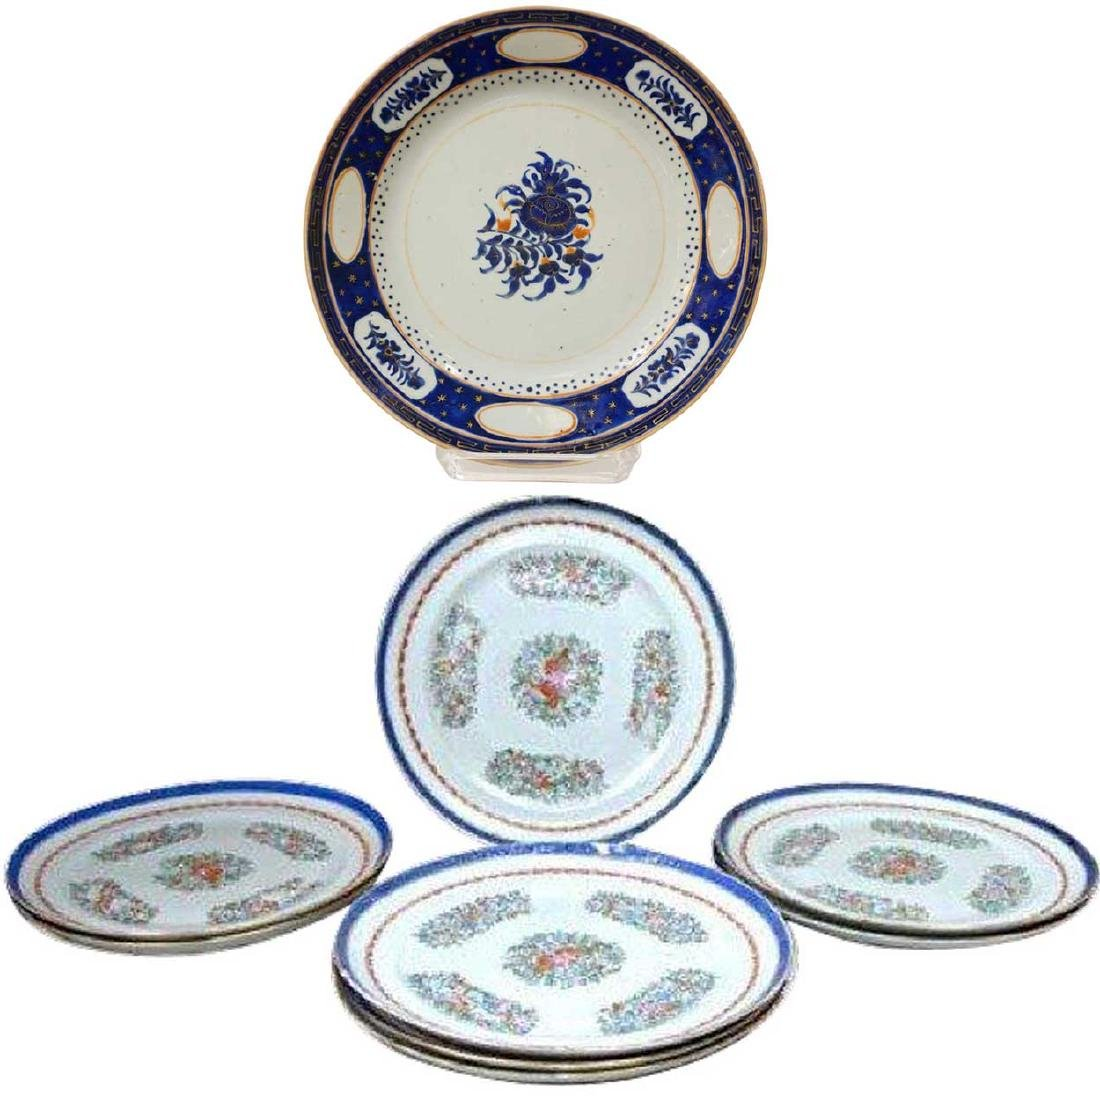 Seven Chinese Export Porcelain Plates